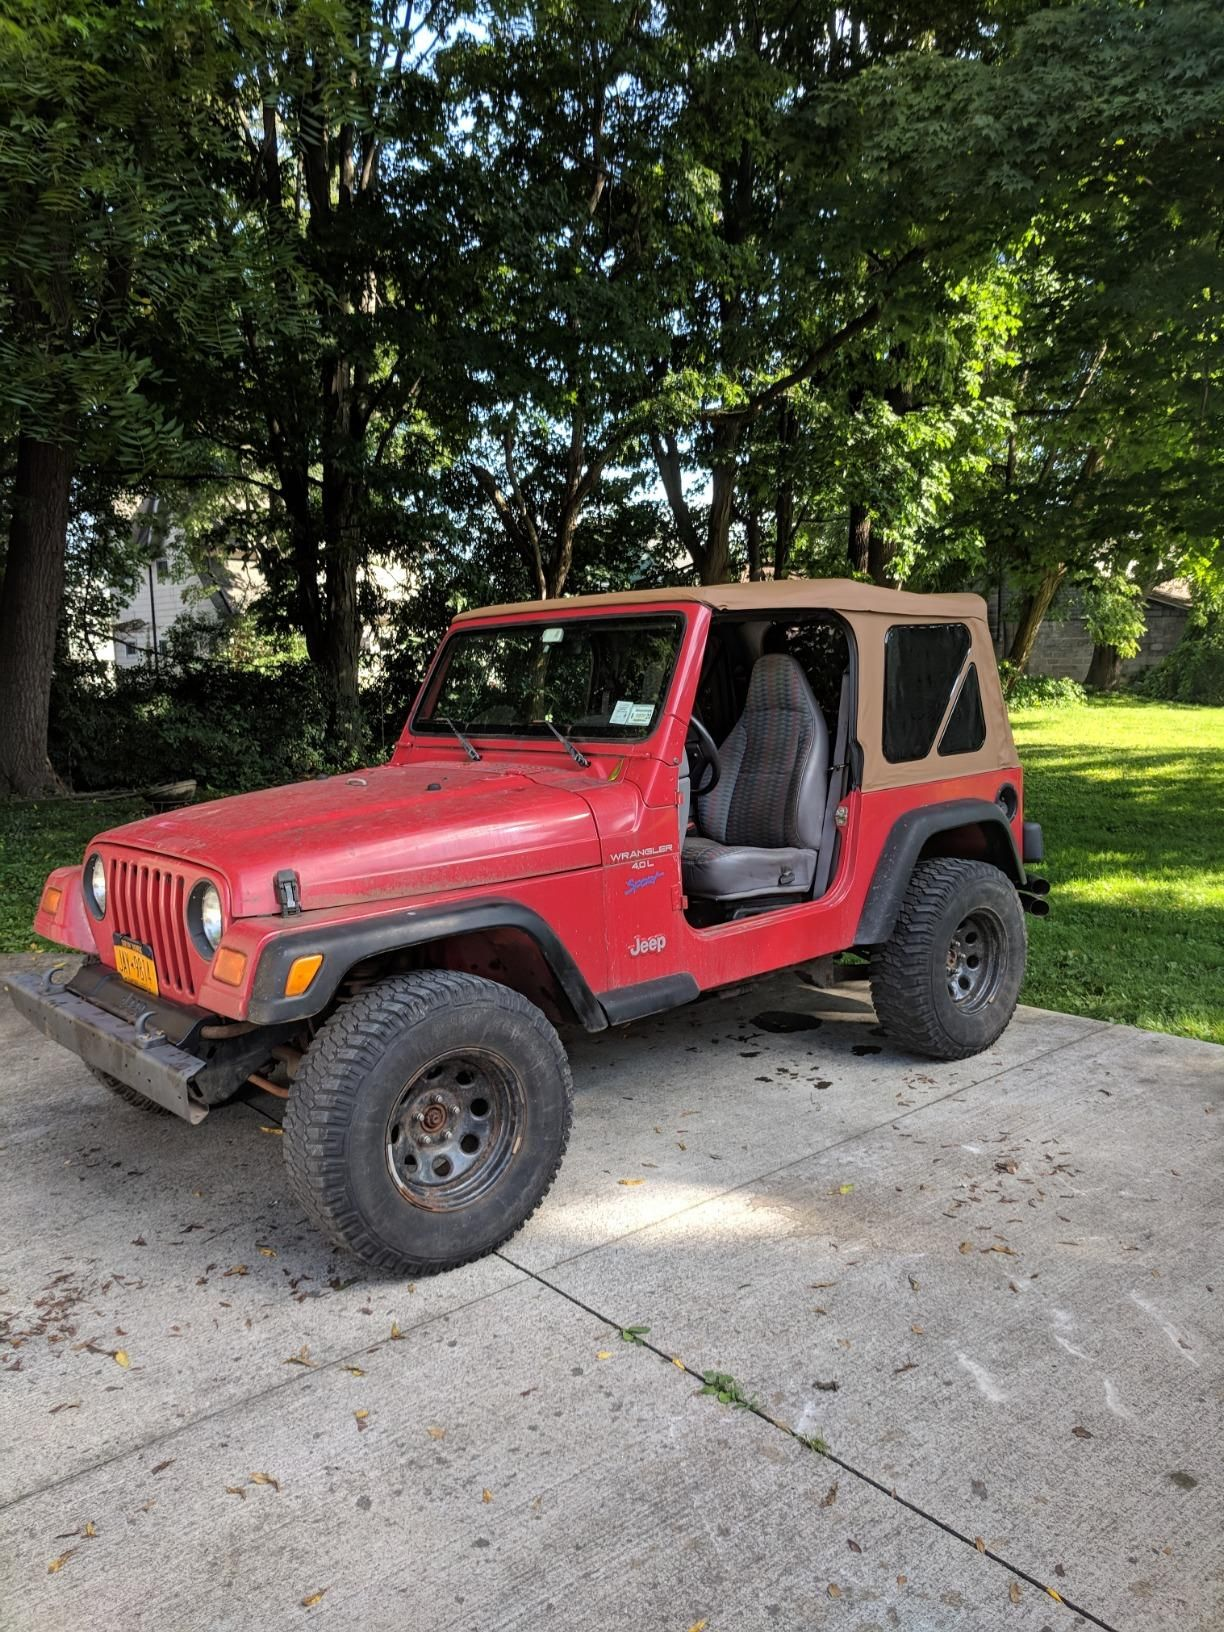 Red Jeep Tj Spice Soft Top In 2020 2006 Jeep Wrangler Jeep Wrangler Soft Top 1997 Jeep Wrangler